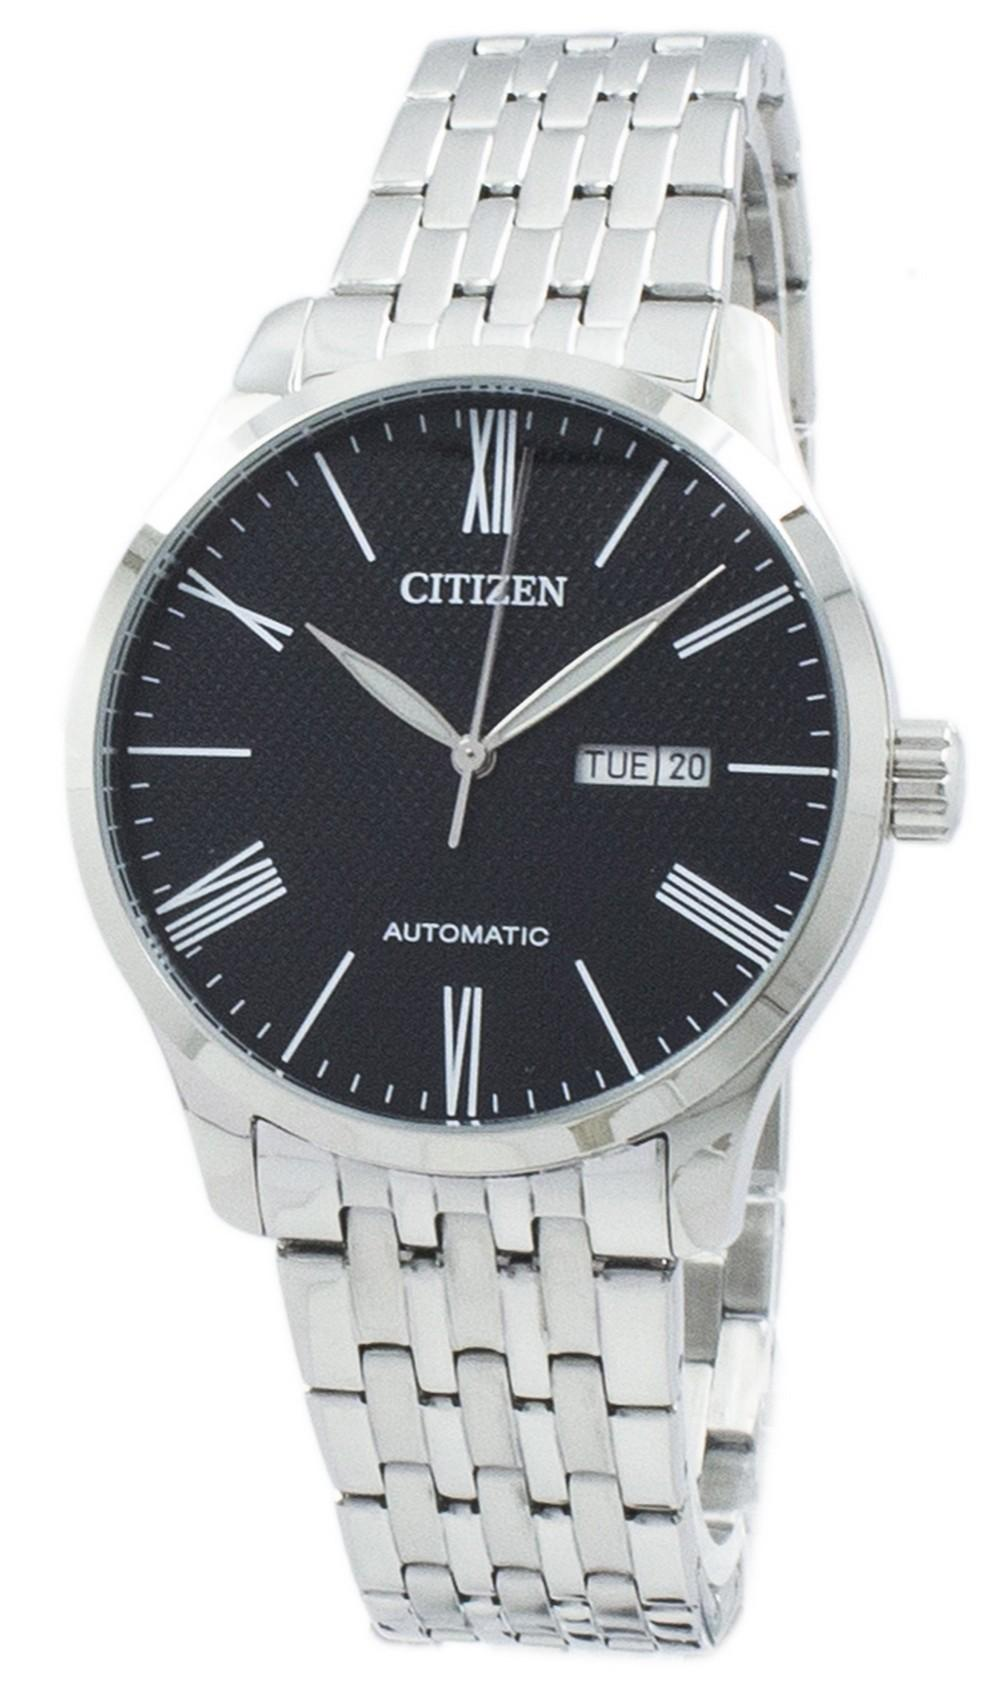 Citizen Automatic Nh8350-59e Men's Watch